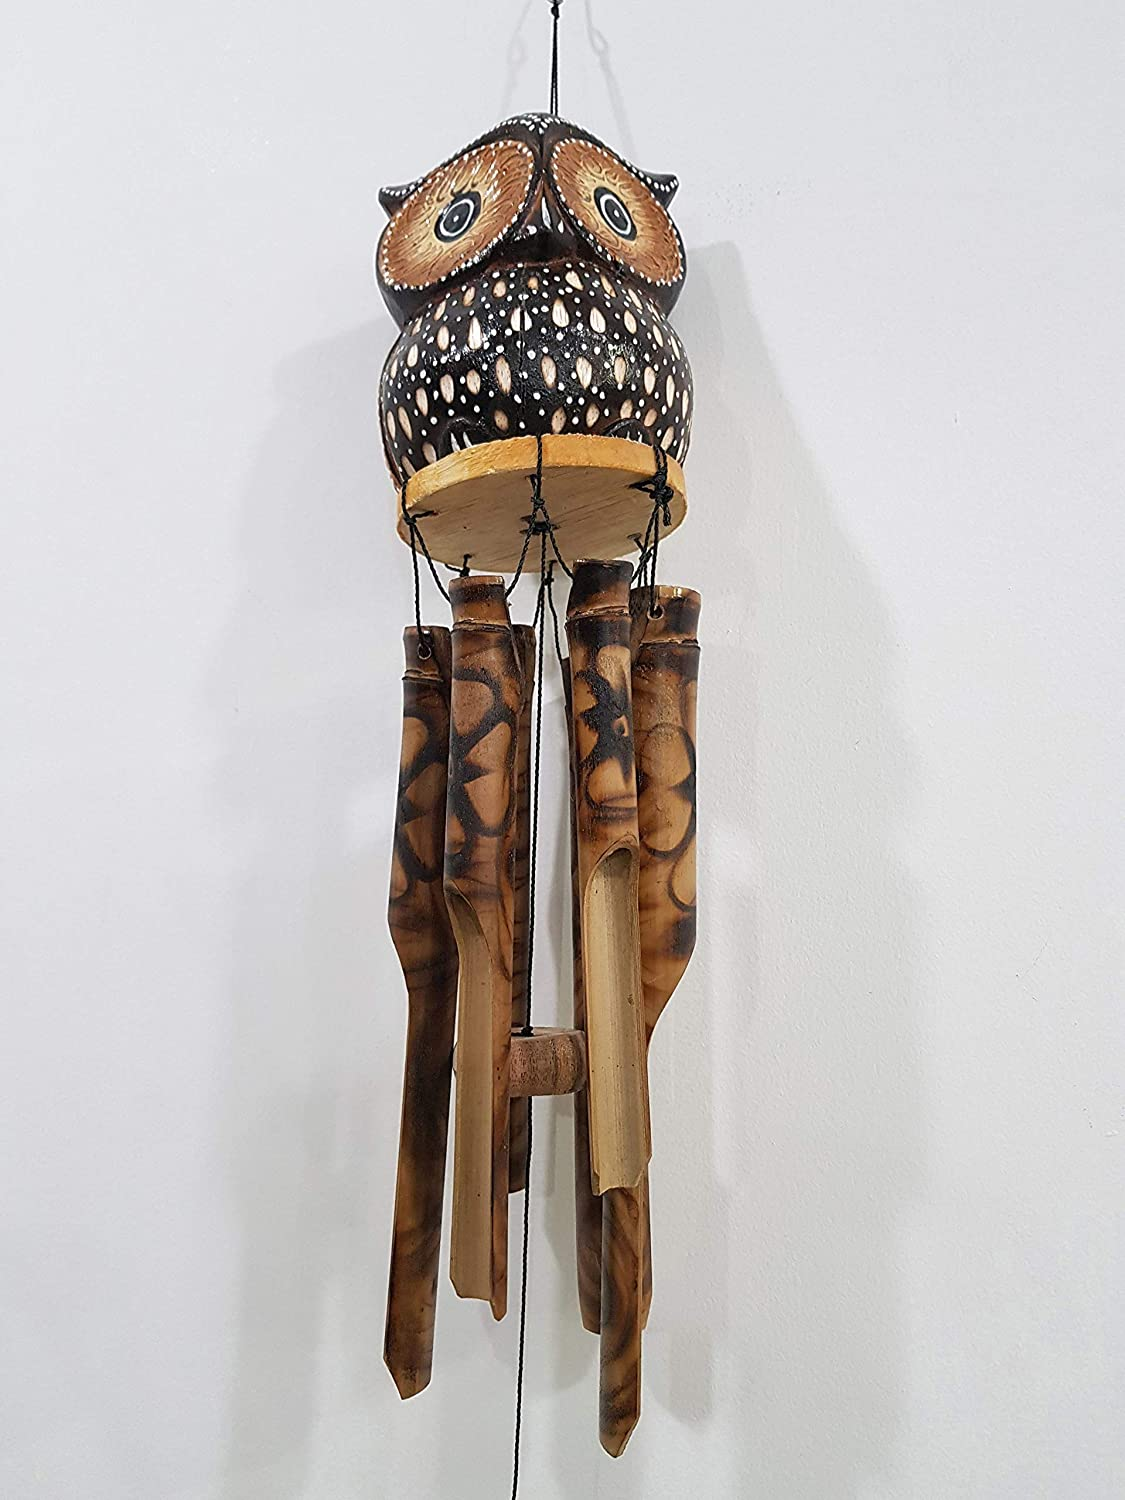 Bongjas At the price Chicago Mall of surprise Dream Owl Bamboo Wind Chime Wood Gifts Memorial C -